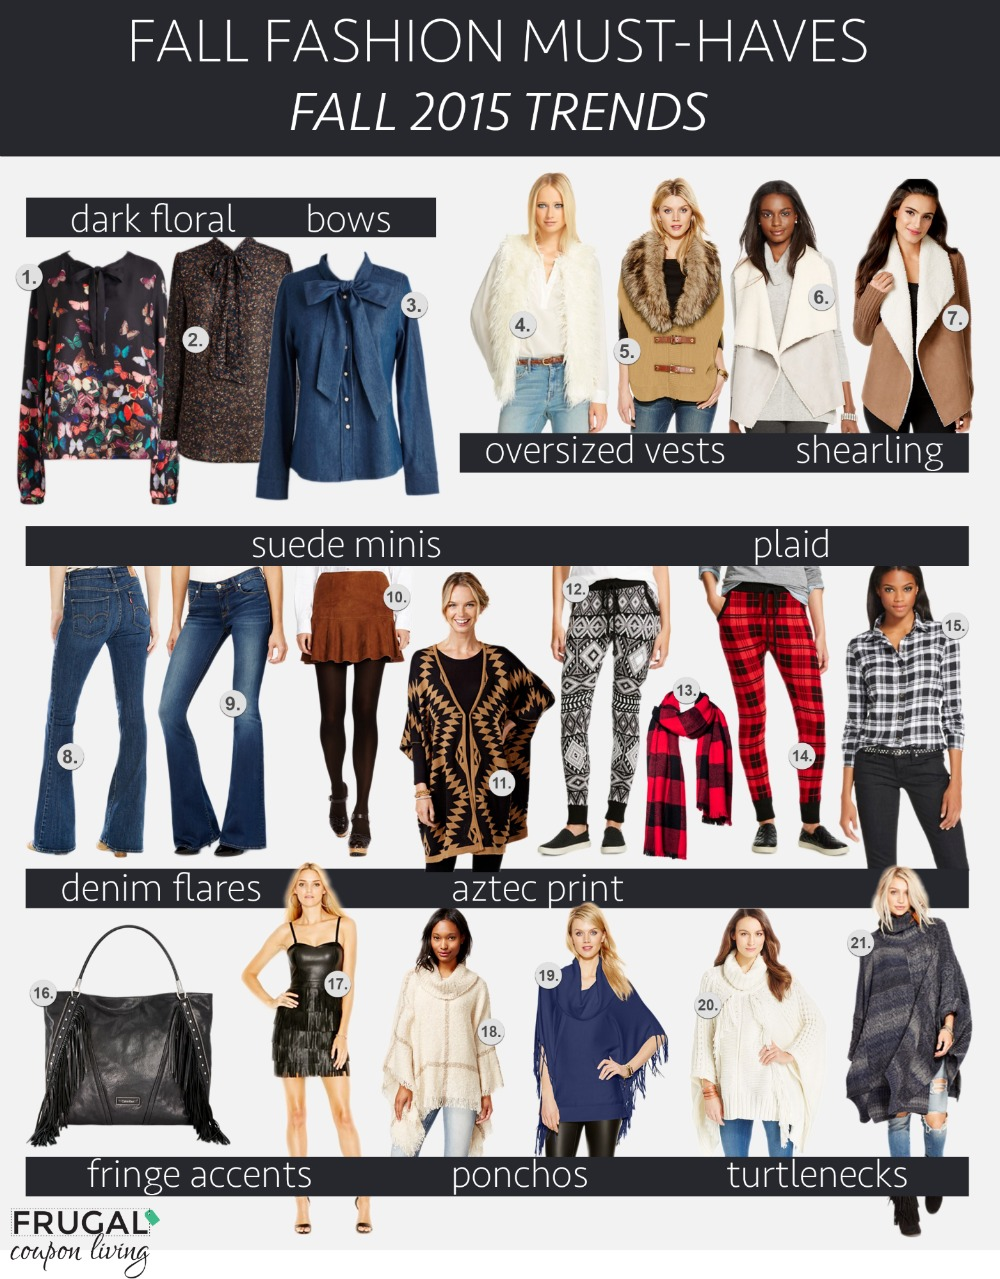 Fall Fashion Must-Haves Fall 2015 Trends Frugal Coupon Living